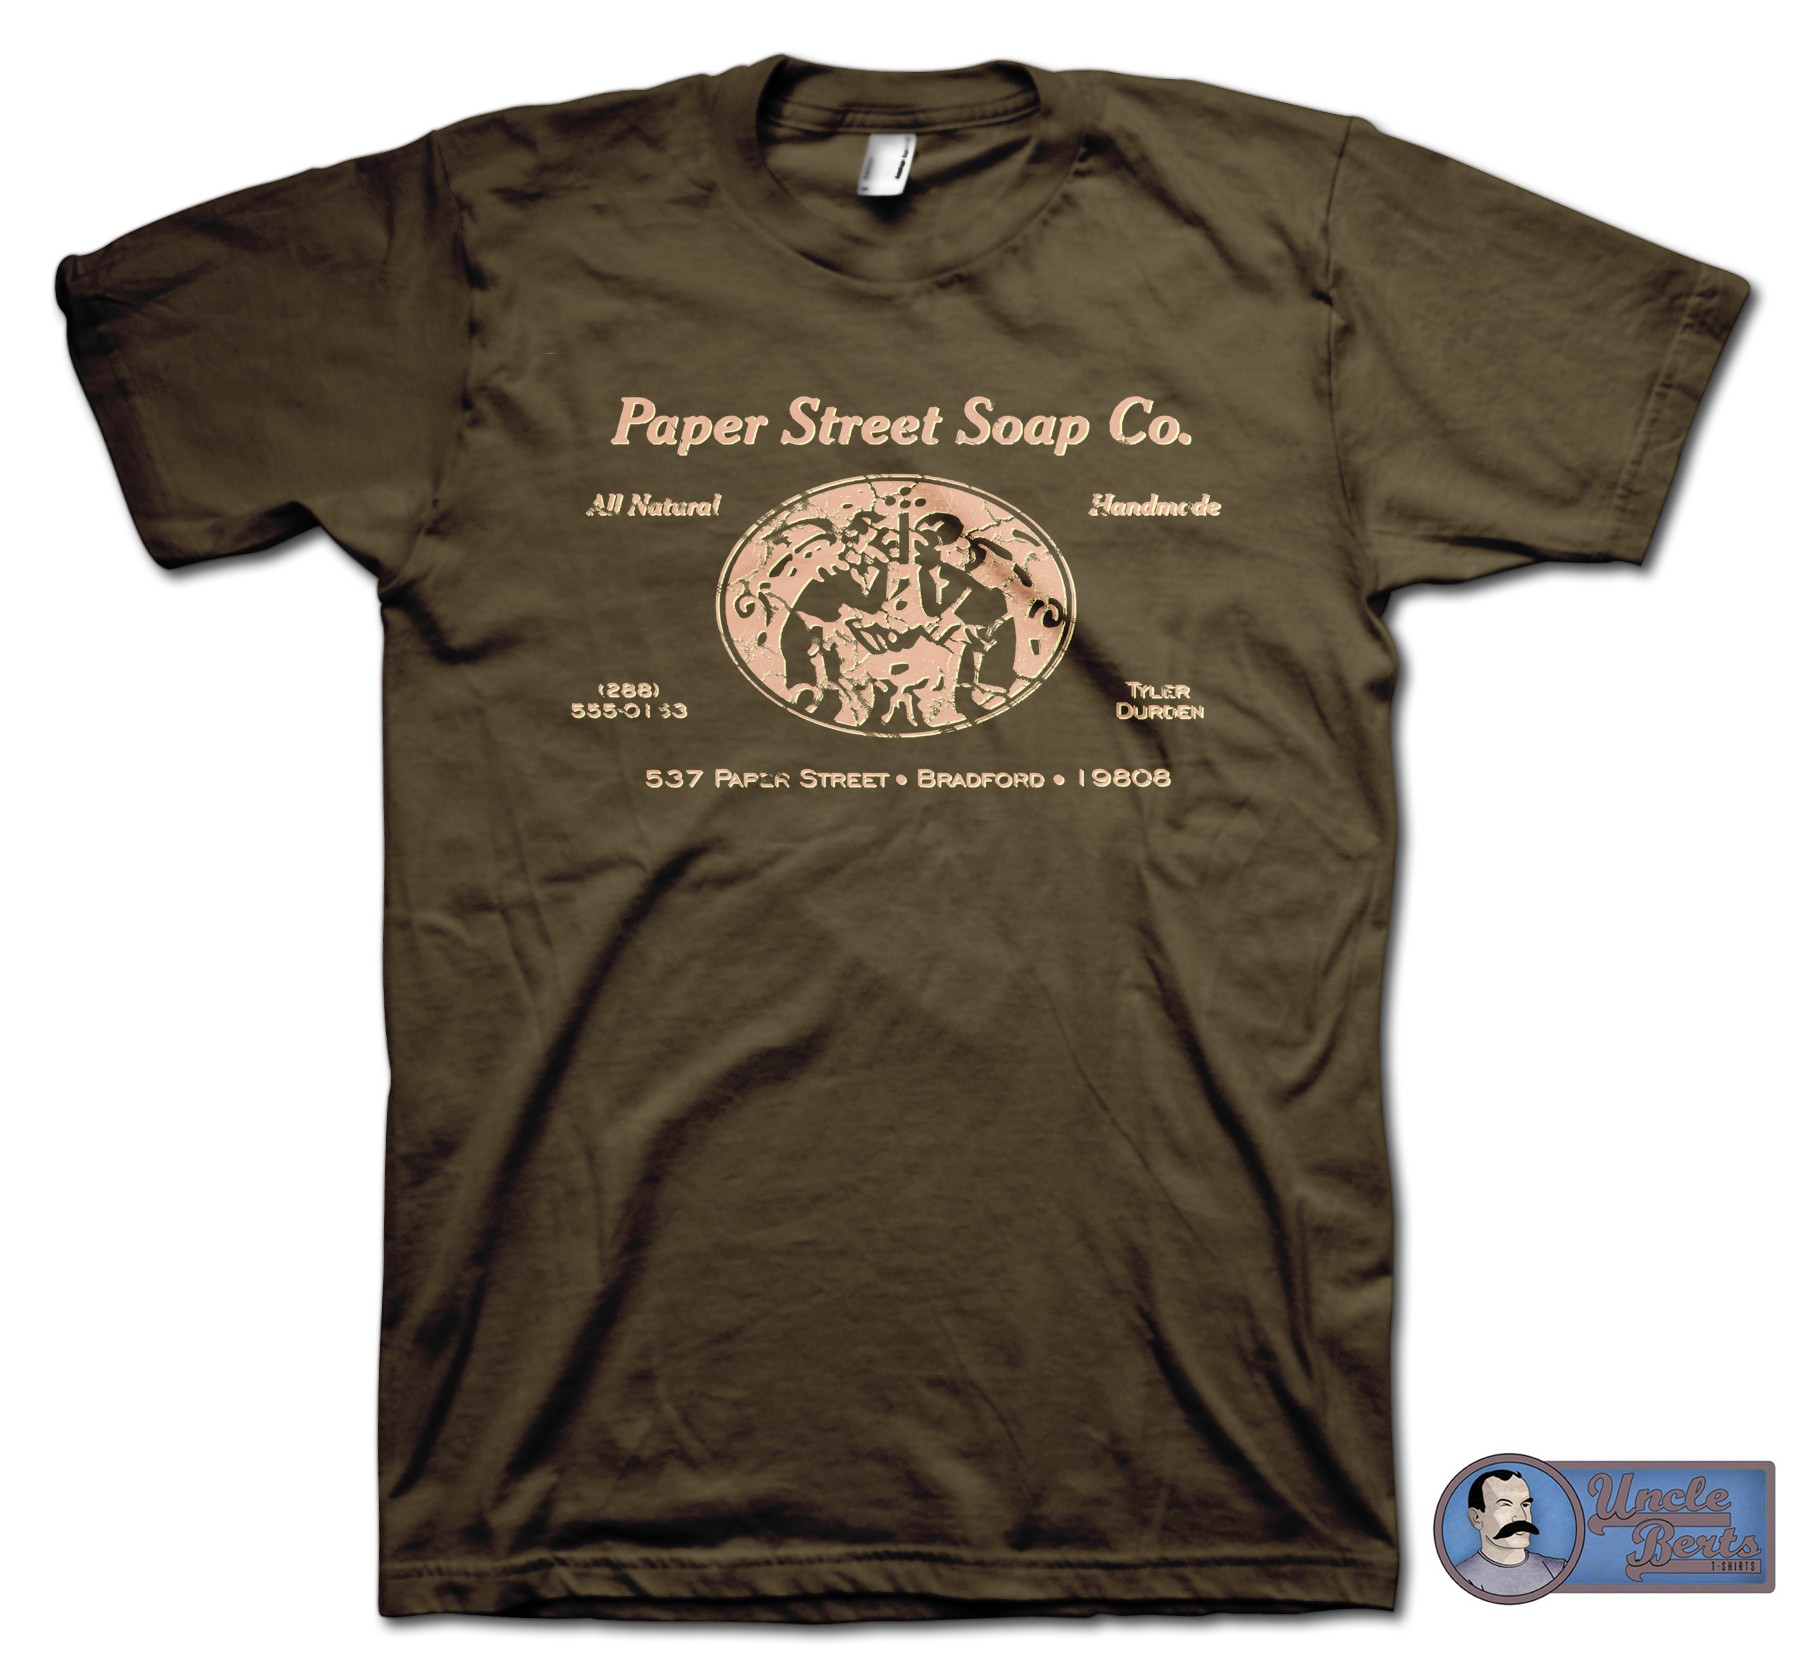 Fight Club (1999) inspired Paper Street Soup Co. T-Shirt